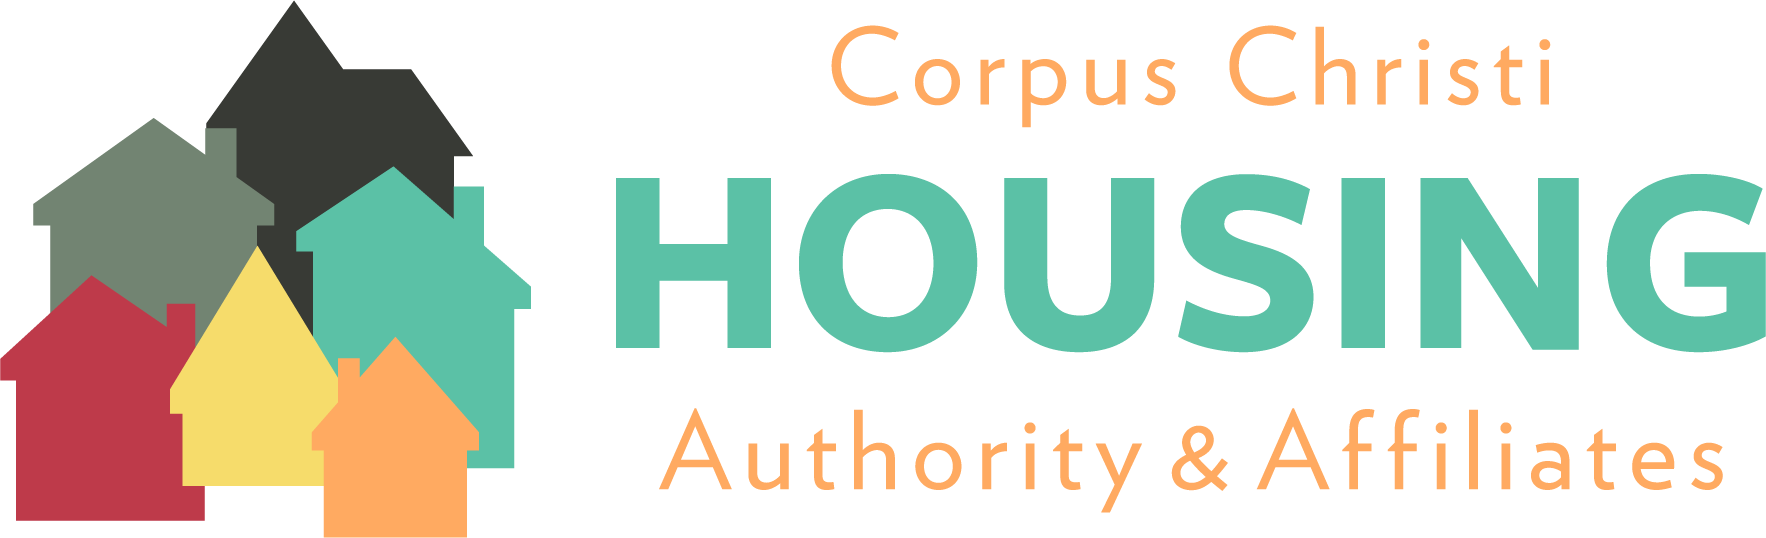 Corpus Christi Housing Authority